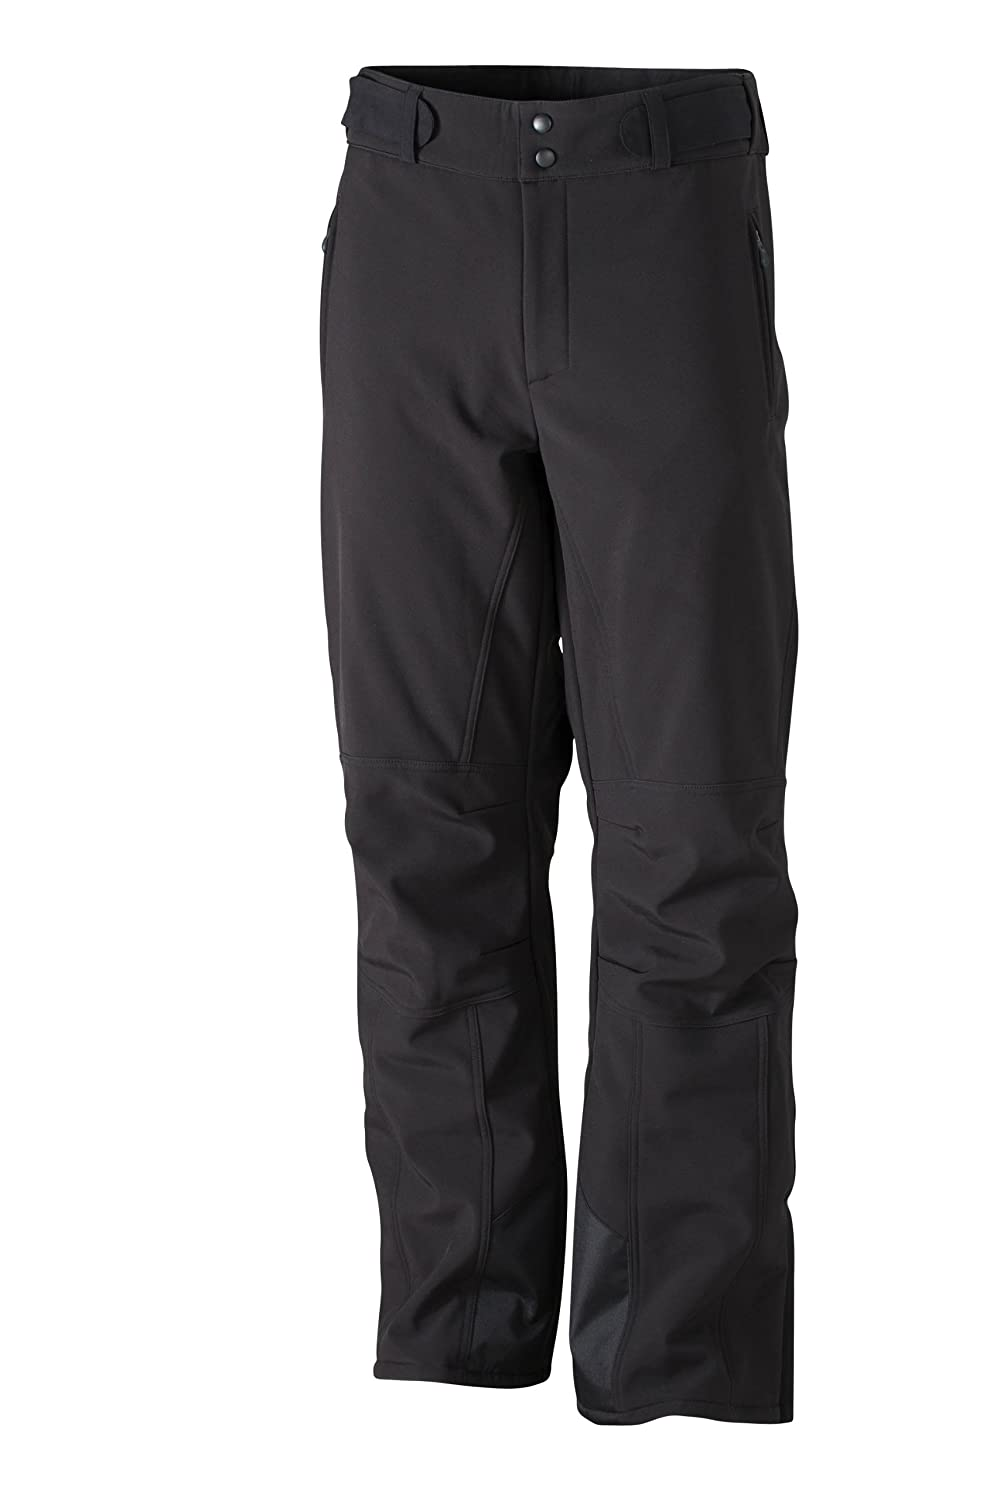 Herren Wintersporthose im digatex-package